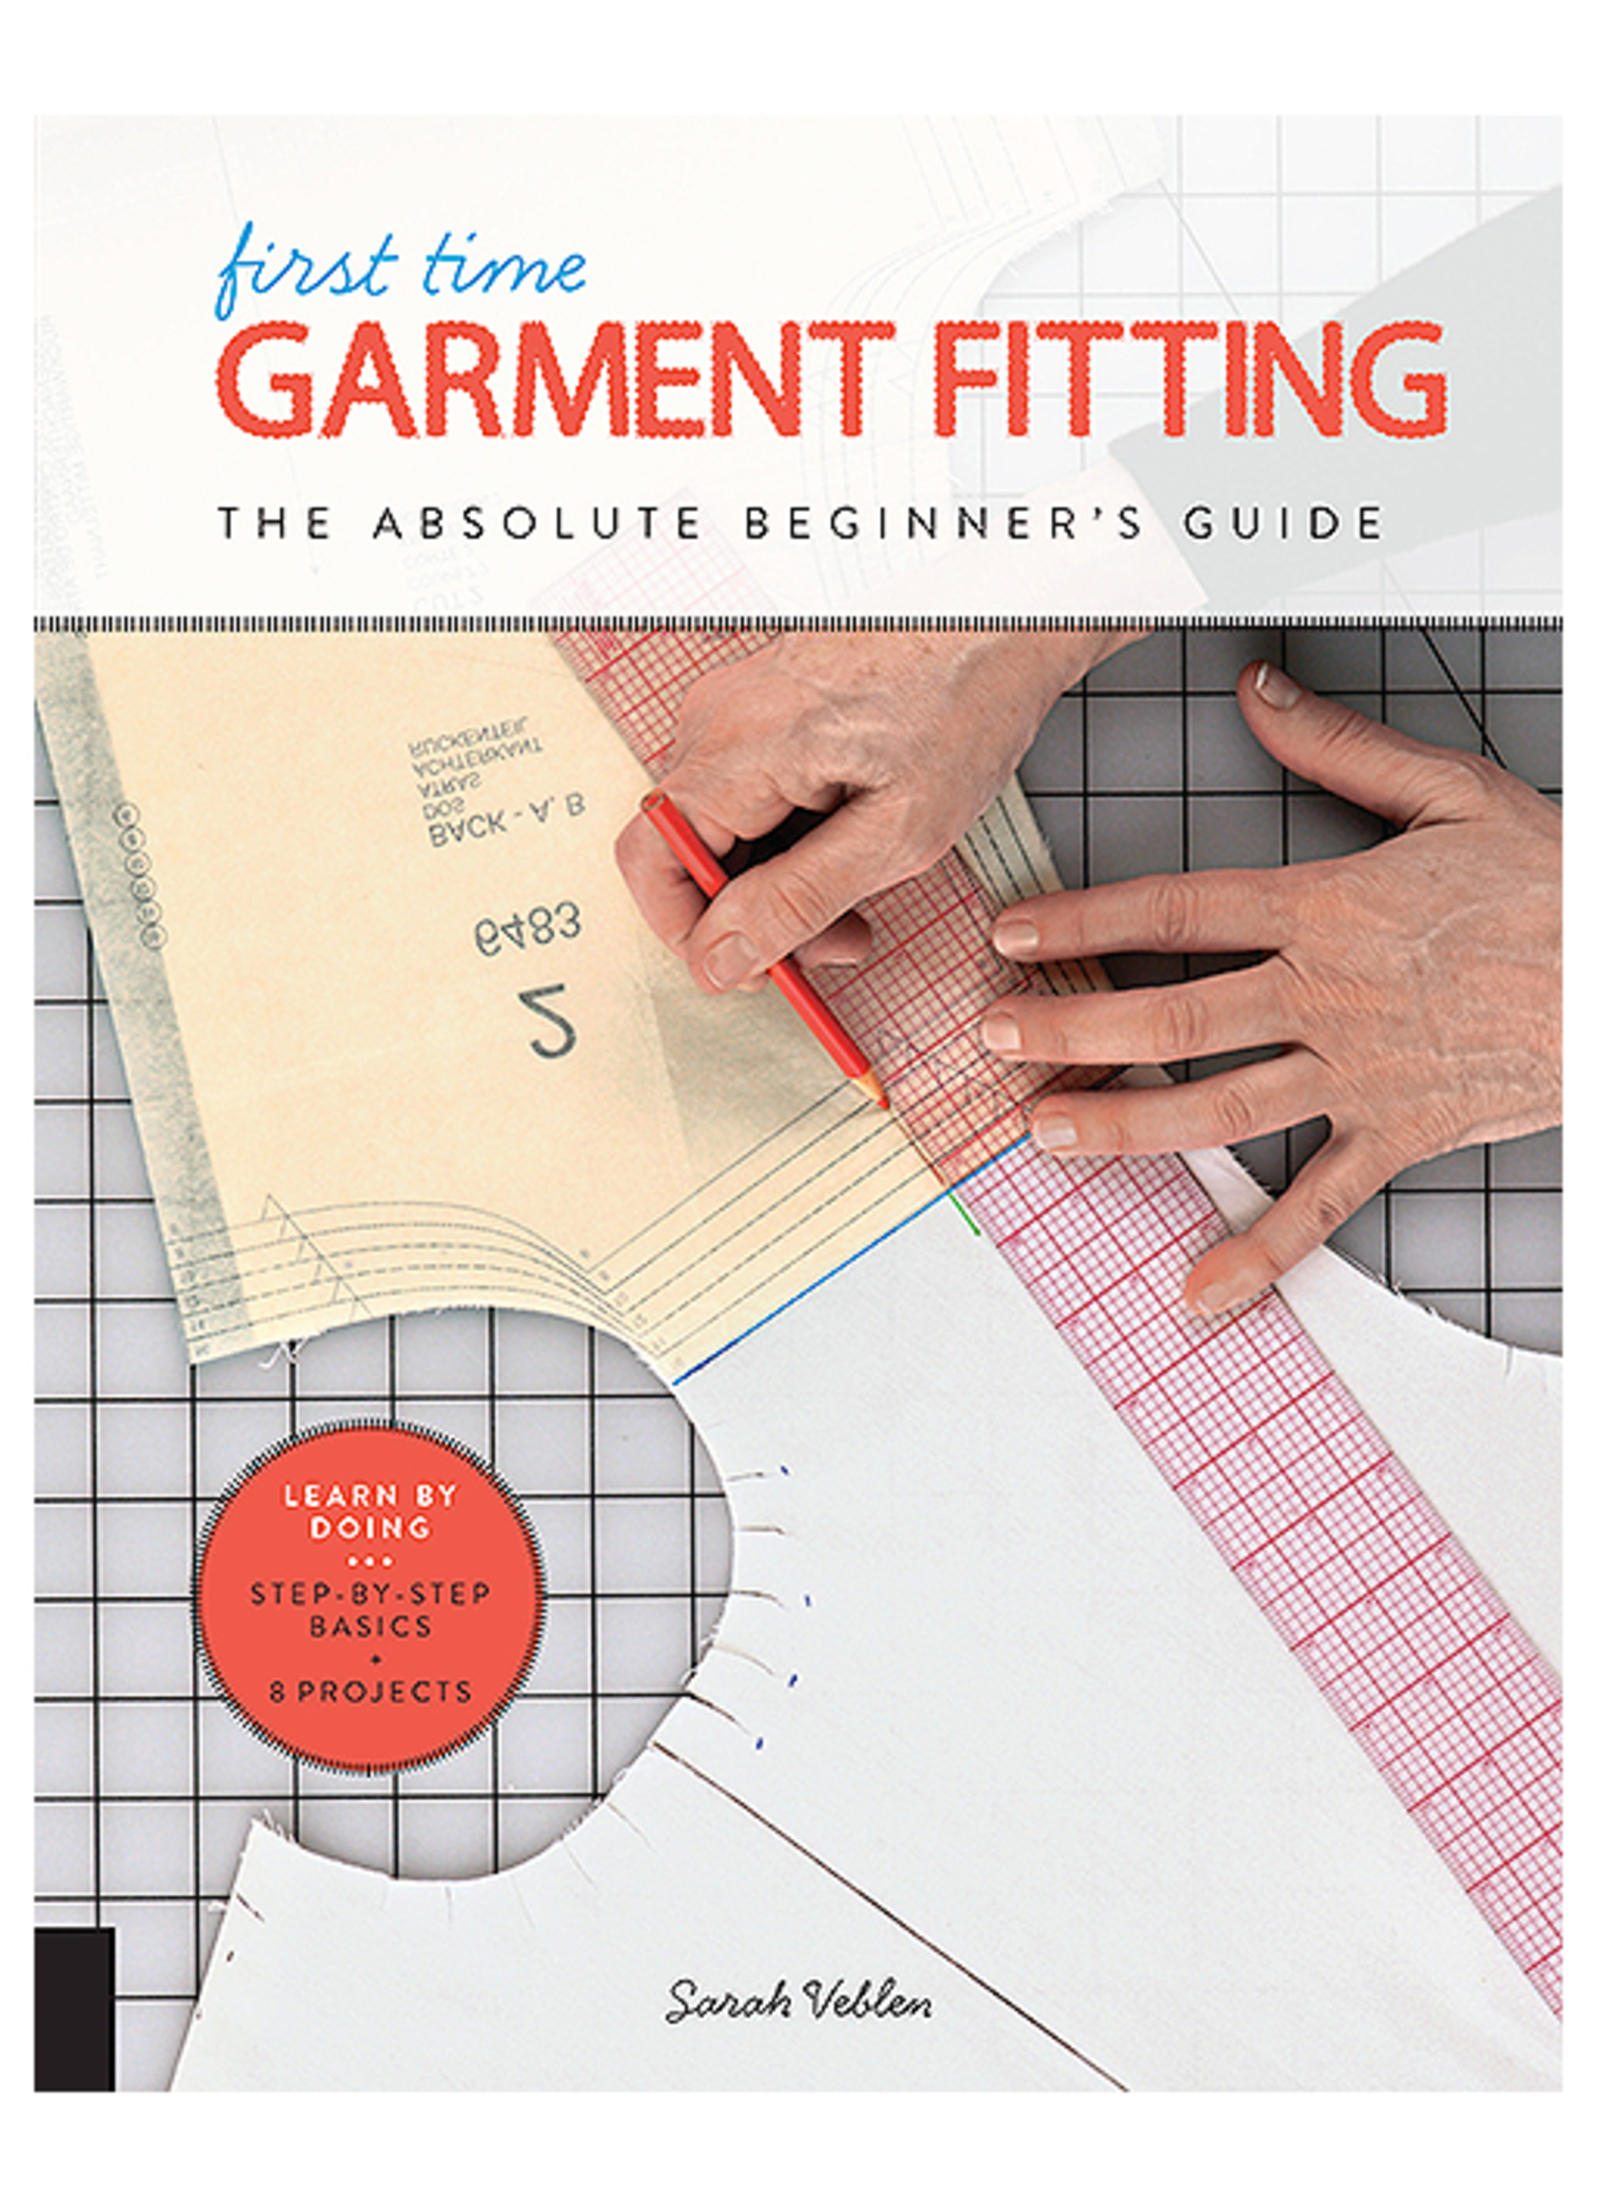 First Time Garment Fitting: The Absolute Beginner's Guide